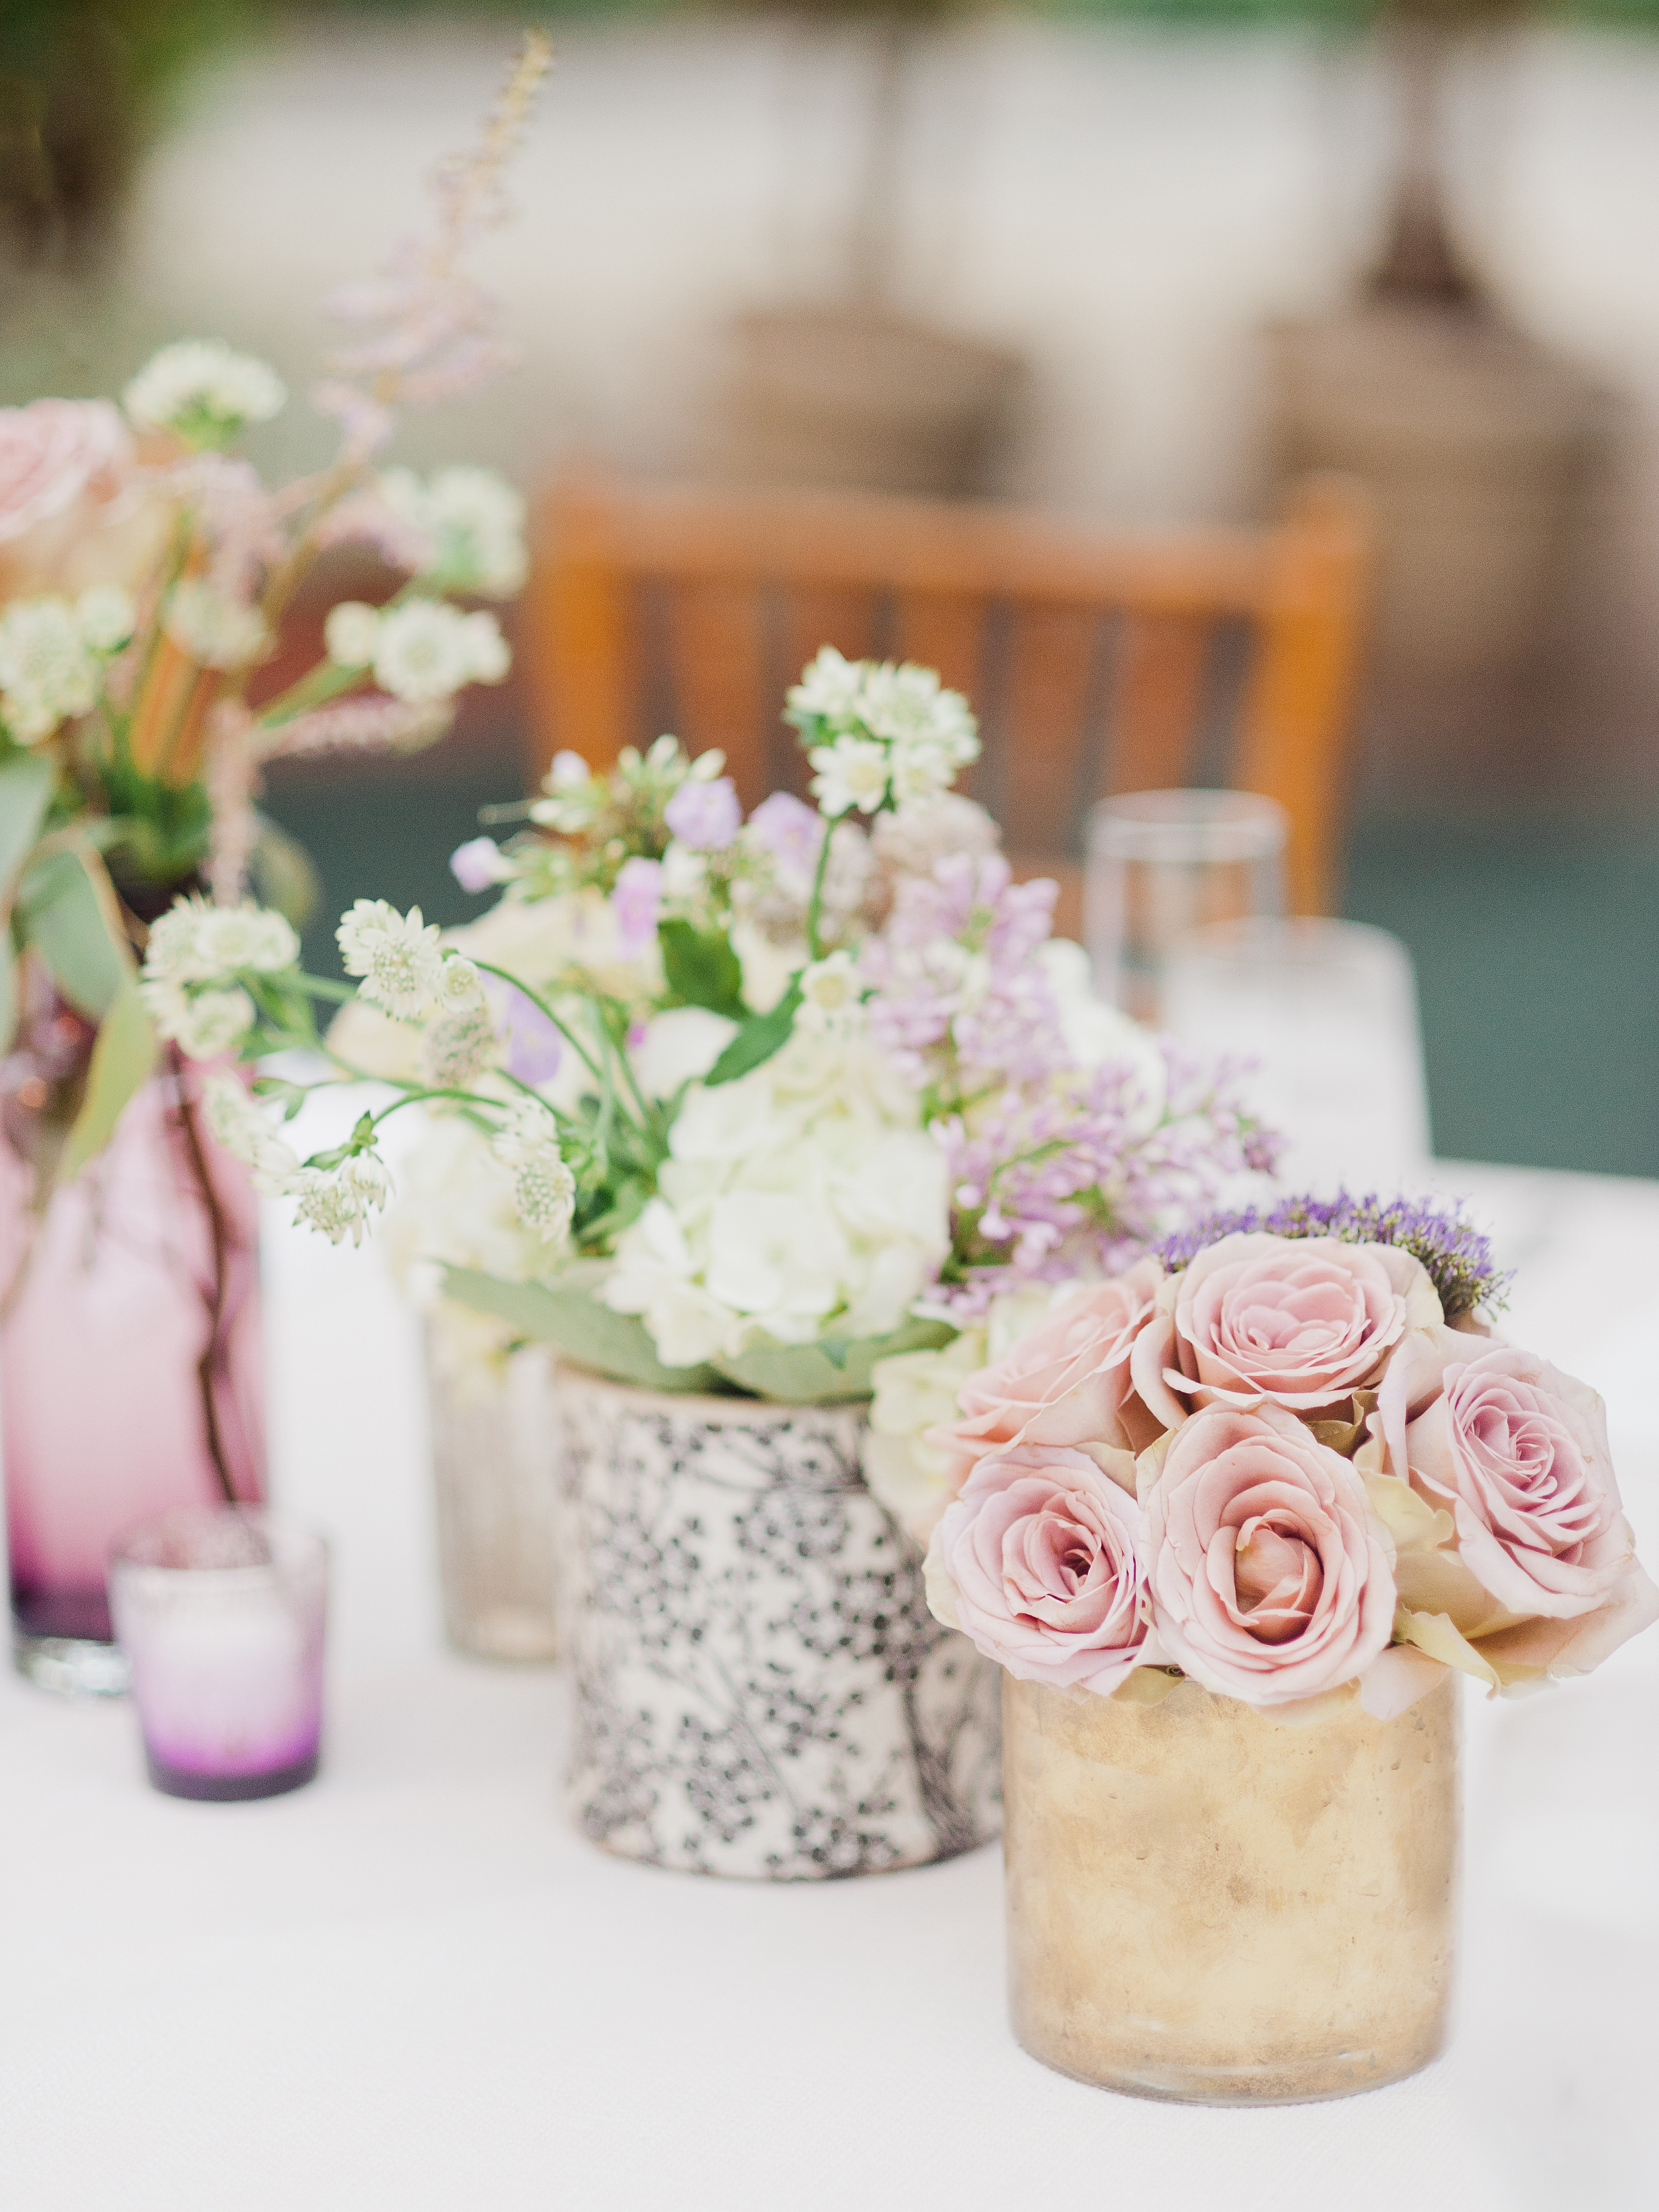 Romantic Cluster Centerpieces with Roses